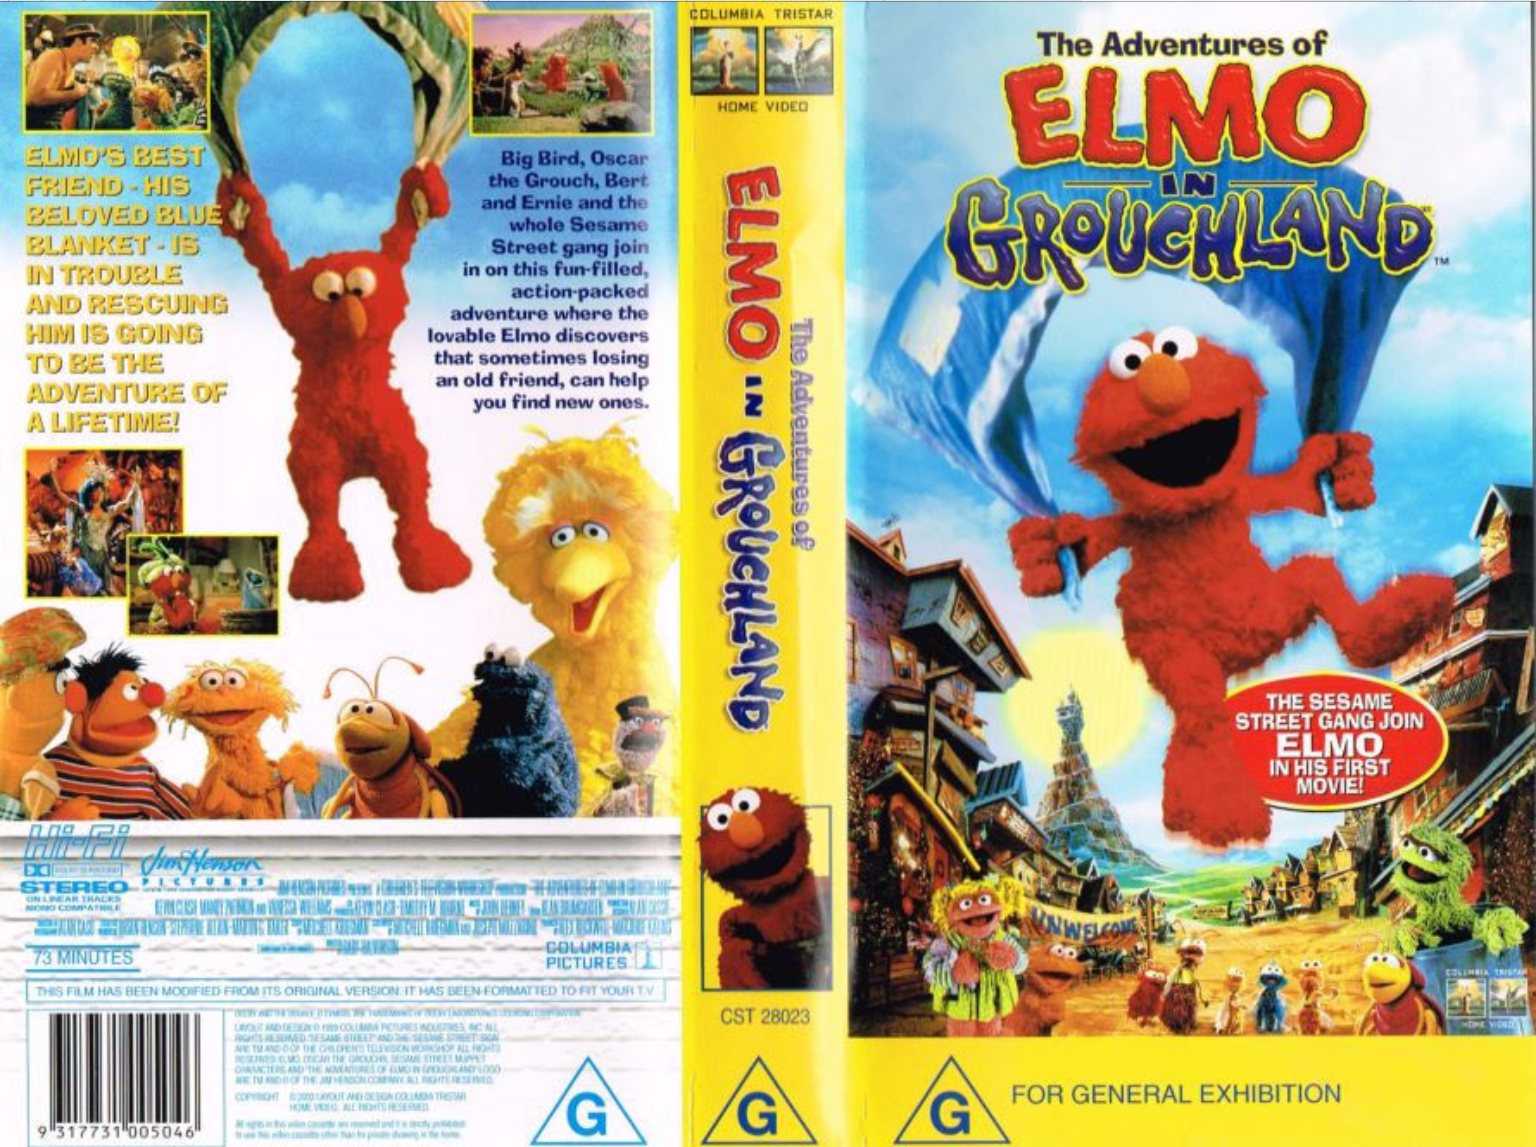 The Adventures of Elmo in Grouchland/Gallery